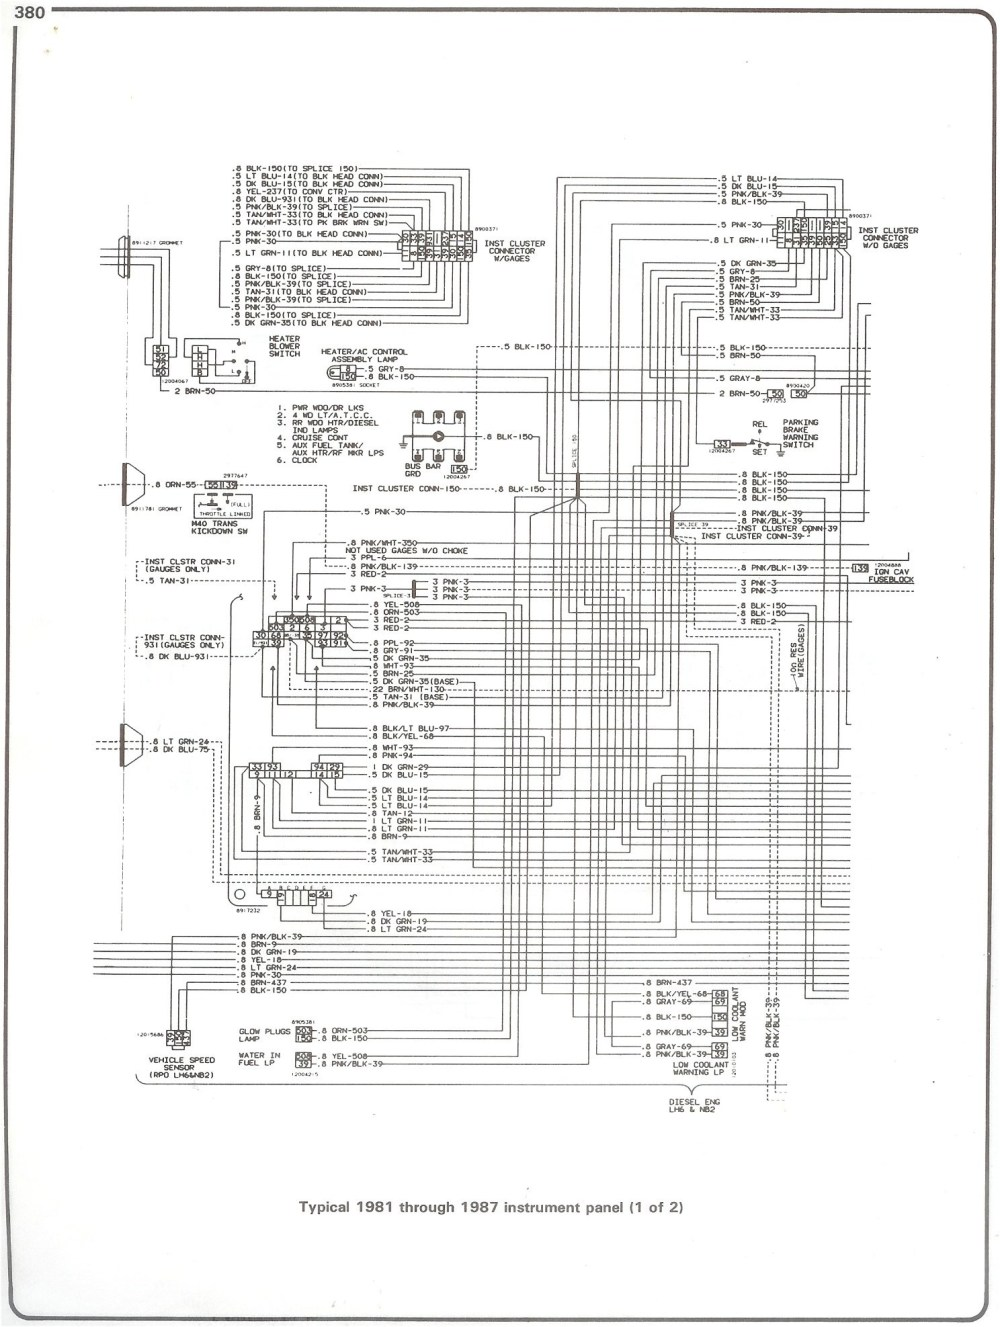 medium resolution of wiring diagram for 85 k5 blazer wiring diagram post 85 k5 blazer wiring diagram wiring diagram